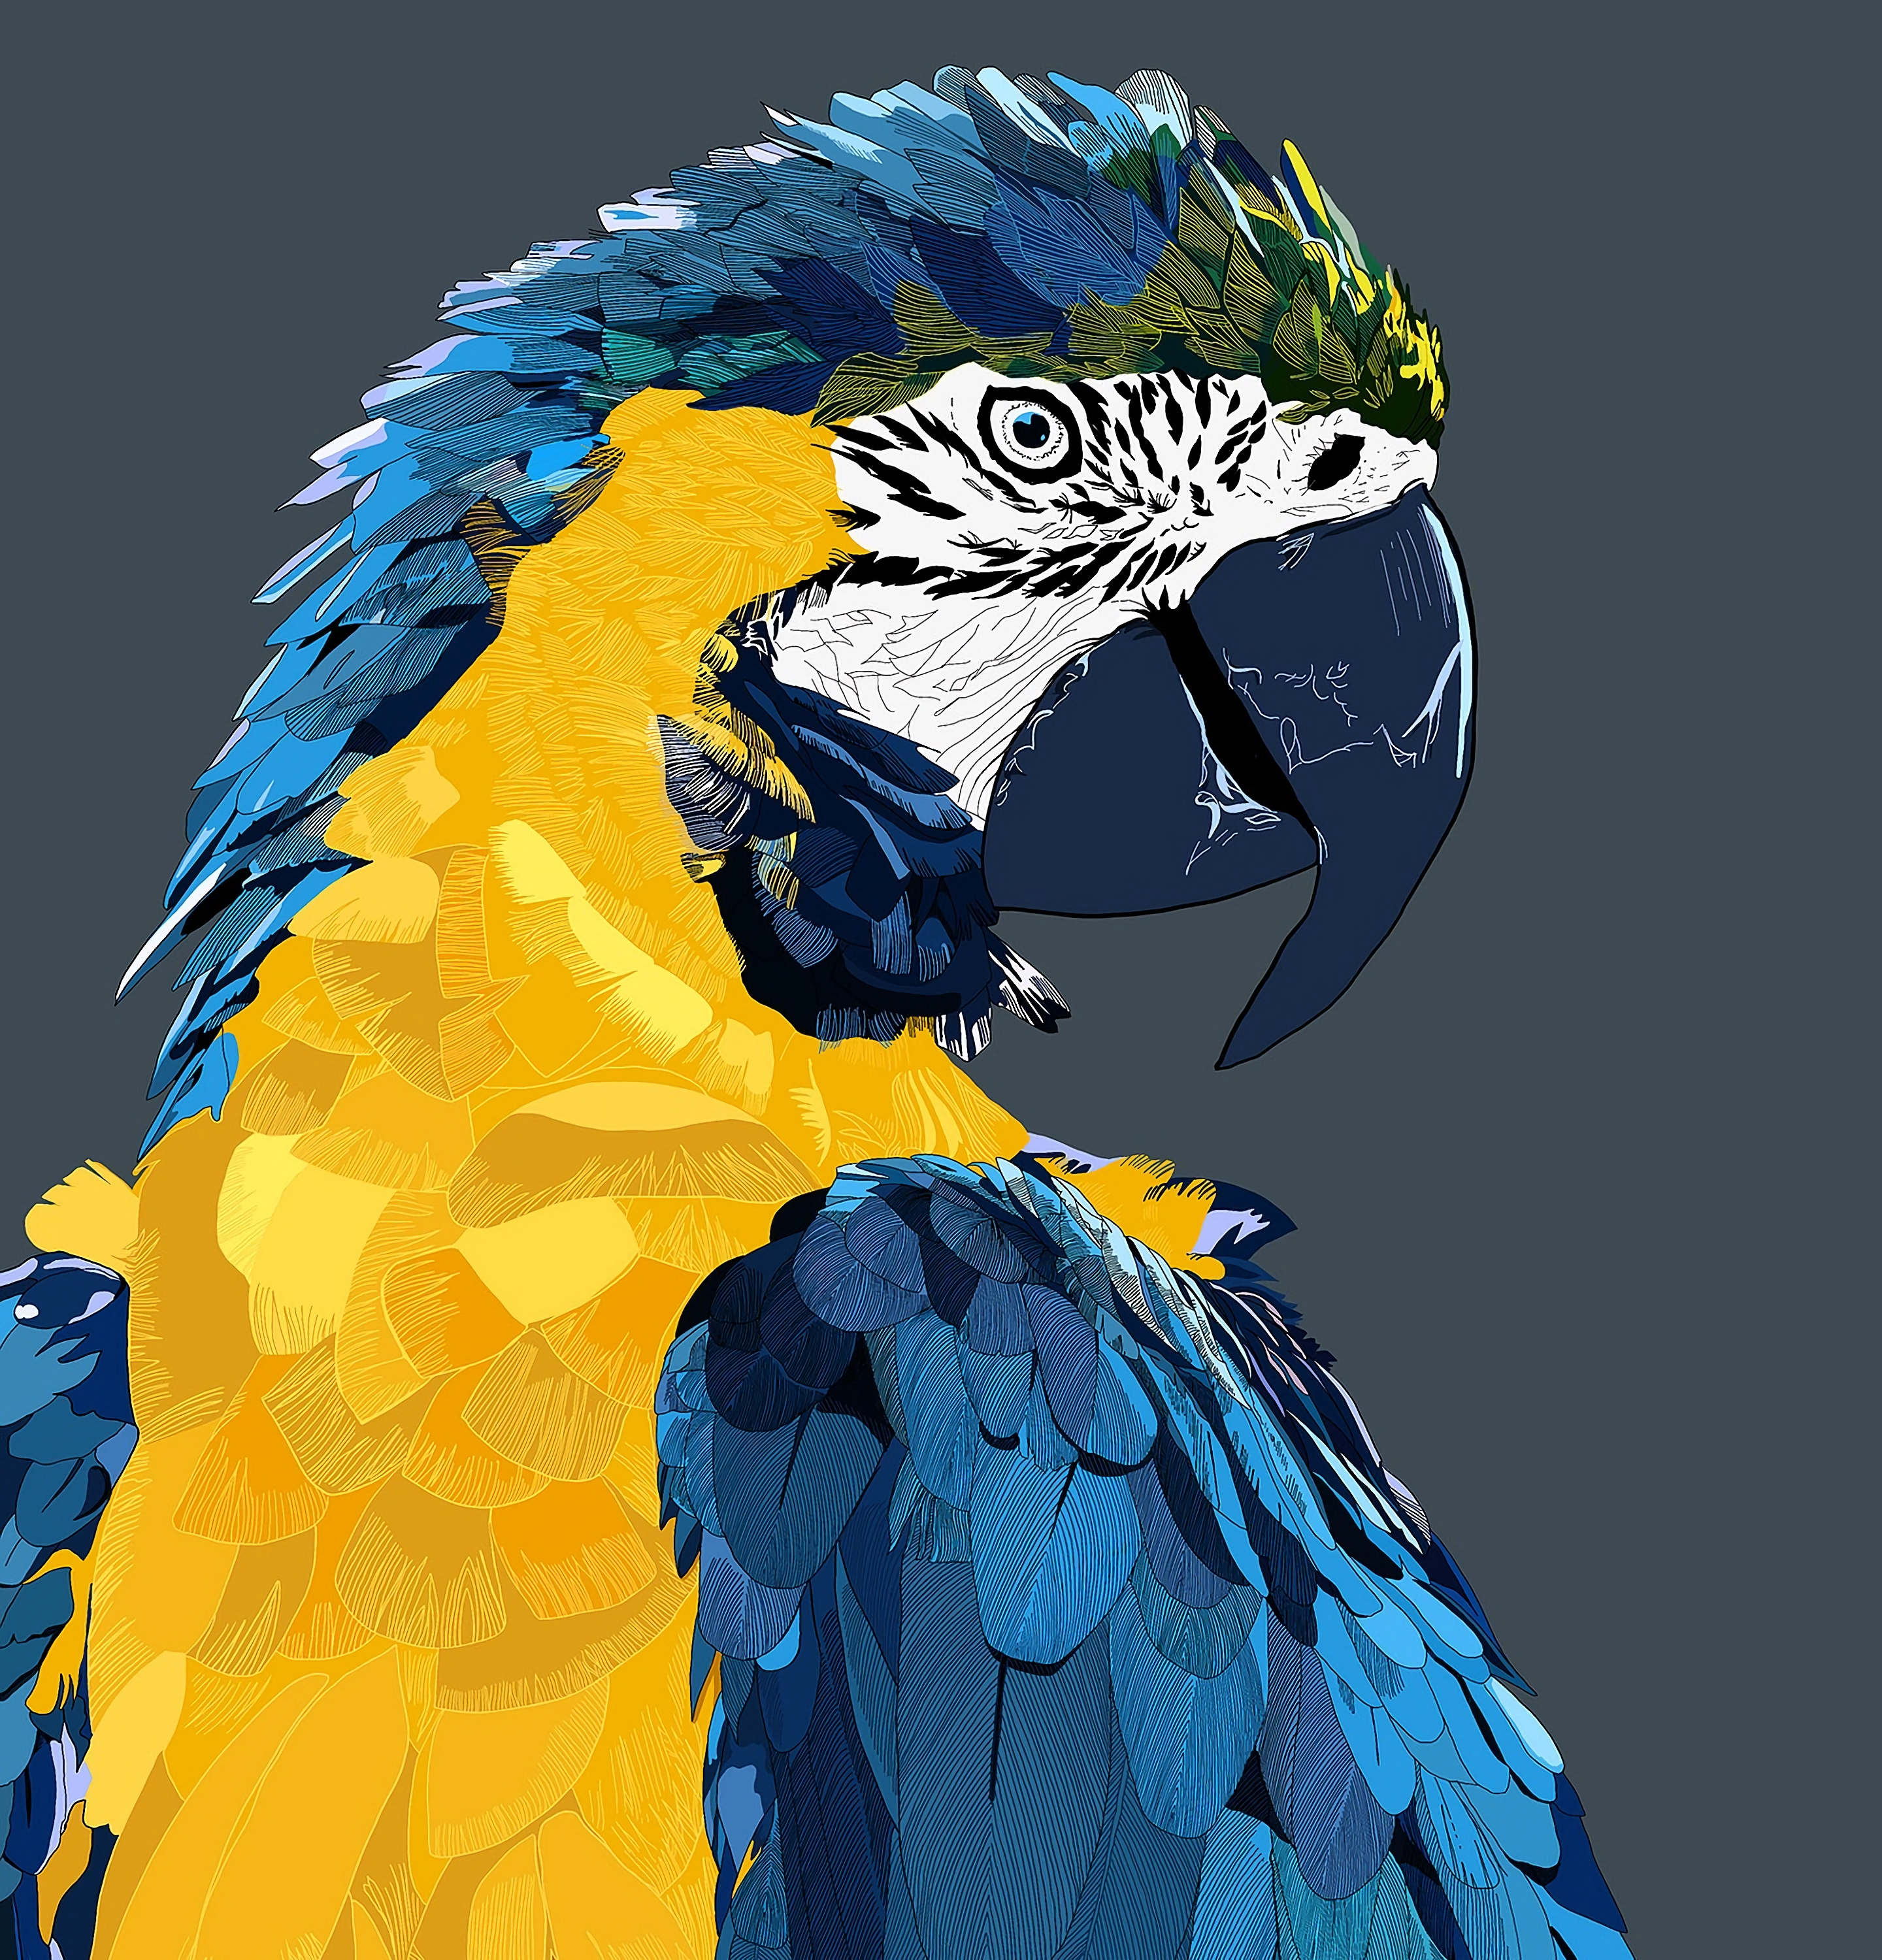 136334 download wallpaper Animals, Parrots, Macaw, Art, Bird screensavers and pictures for free